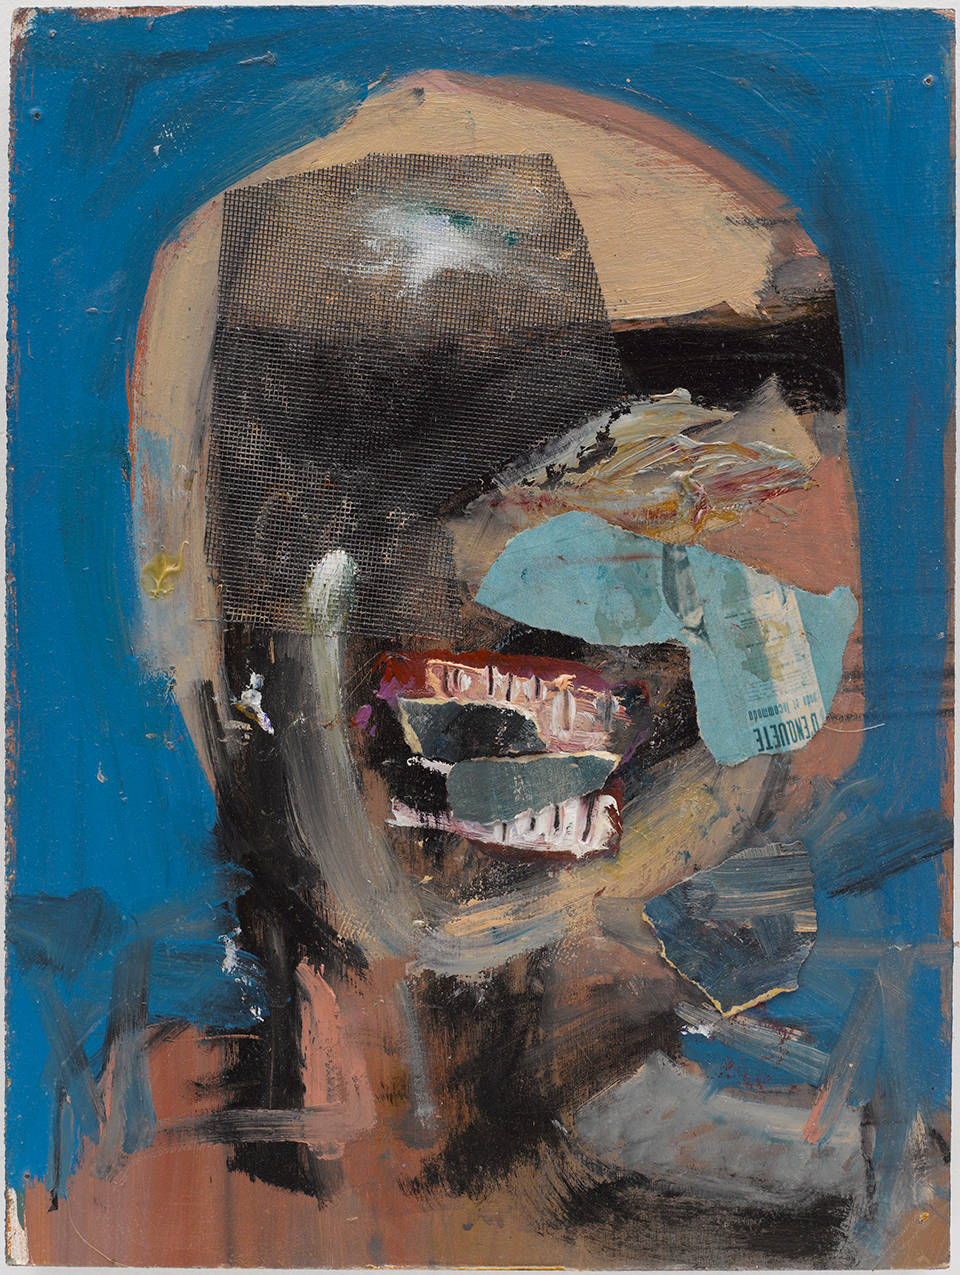 Susan Tepper, Untitled (from the Heads Series), c.1978-1983. Acrylic and collage on Masonite 16 x 12 inches (40.6 x 30.5 cm)